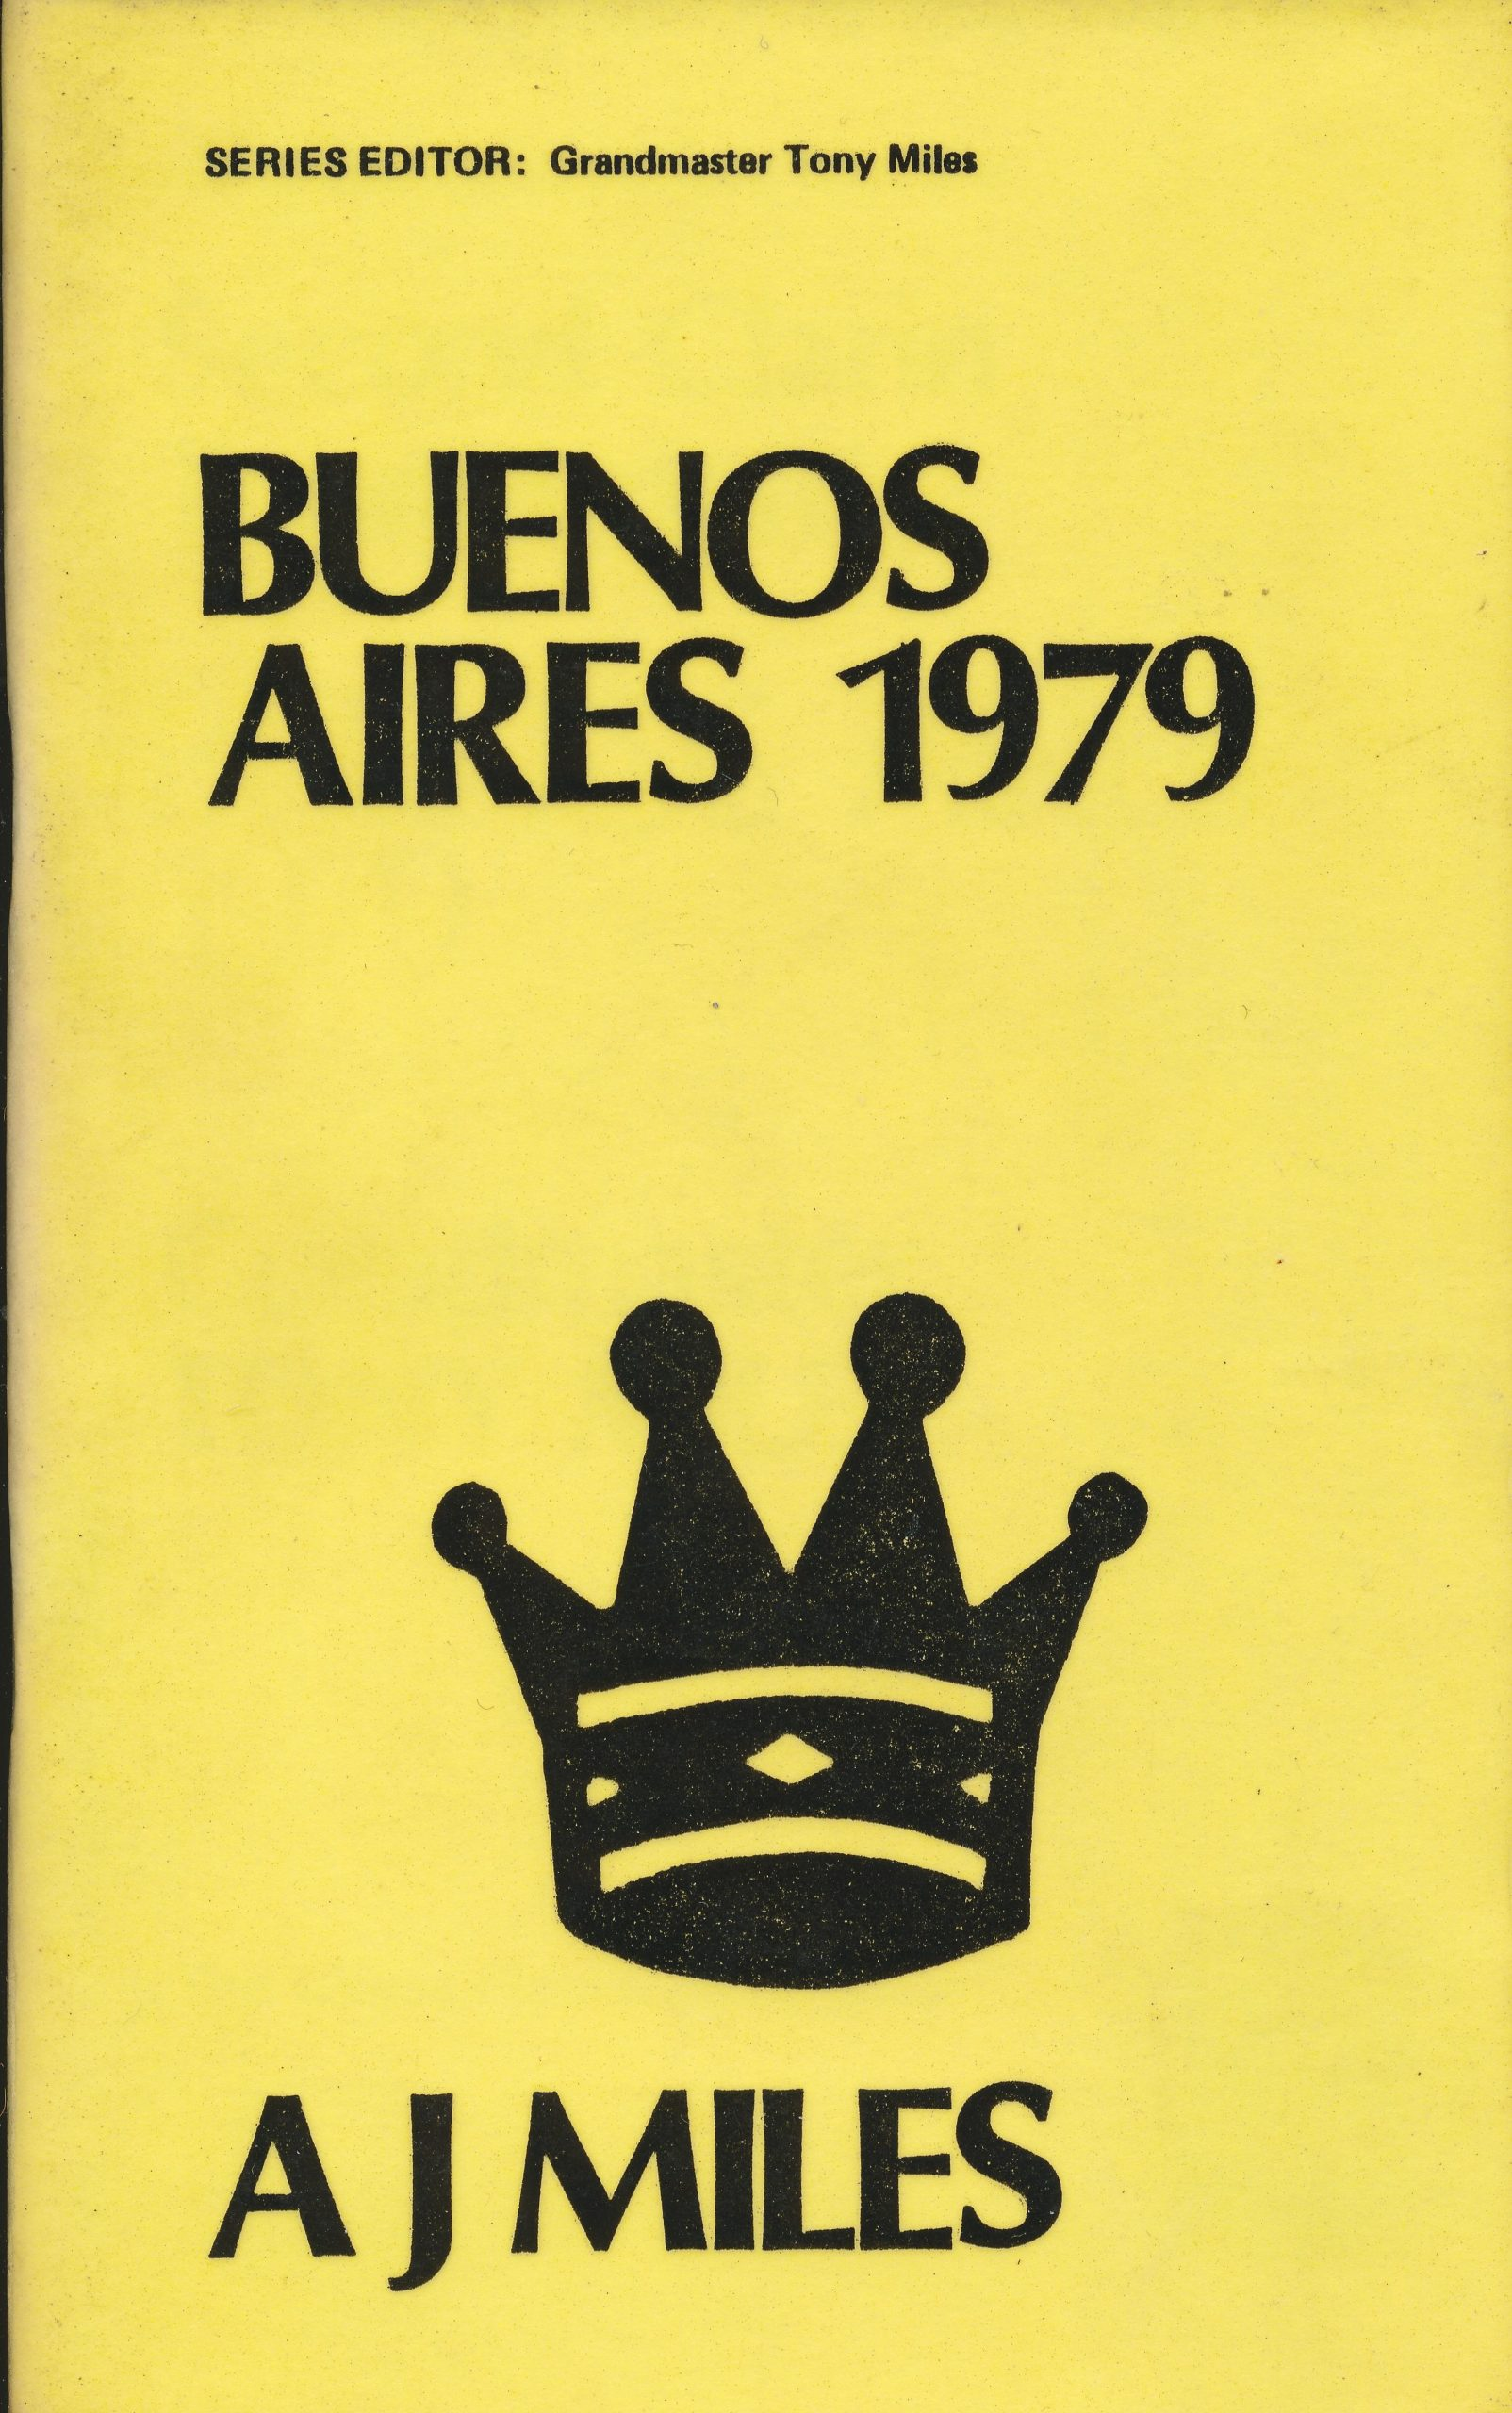 Buenos Aires 1979. AJ Miles, The Chess Player, ISBN 0 906042 31 3